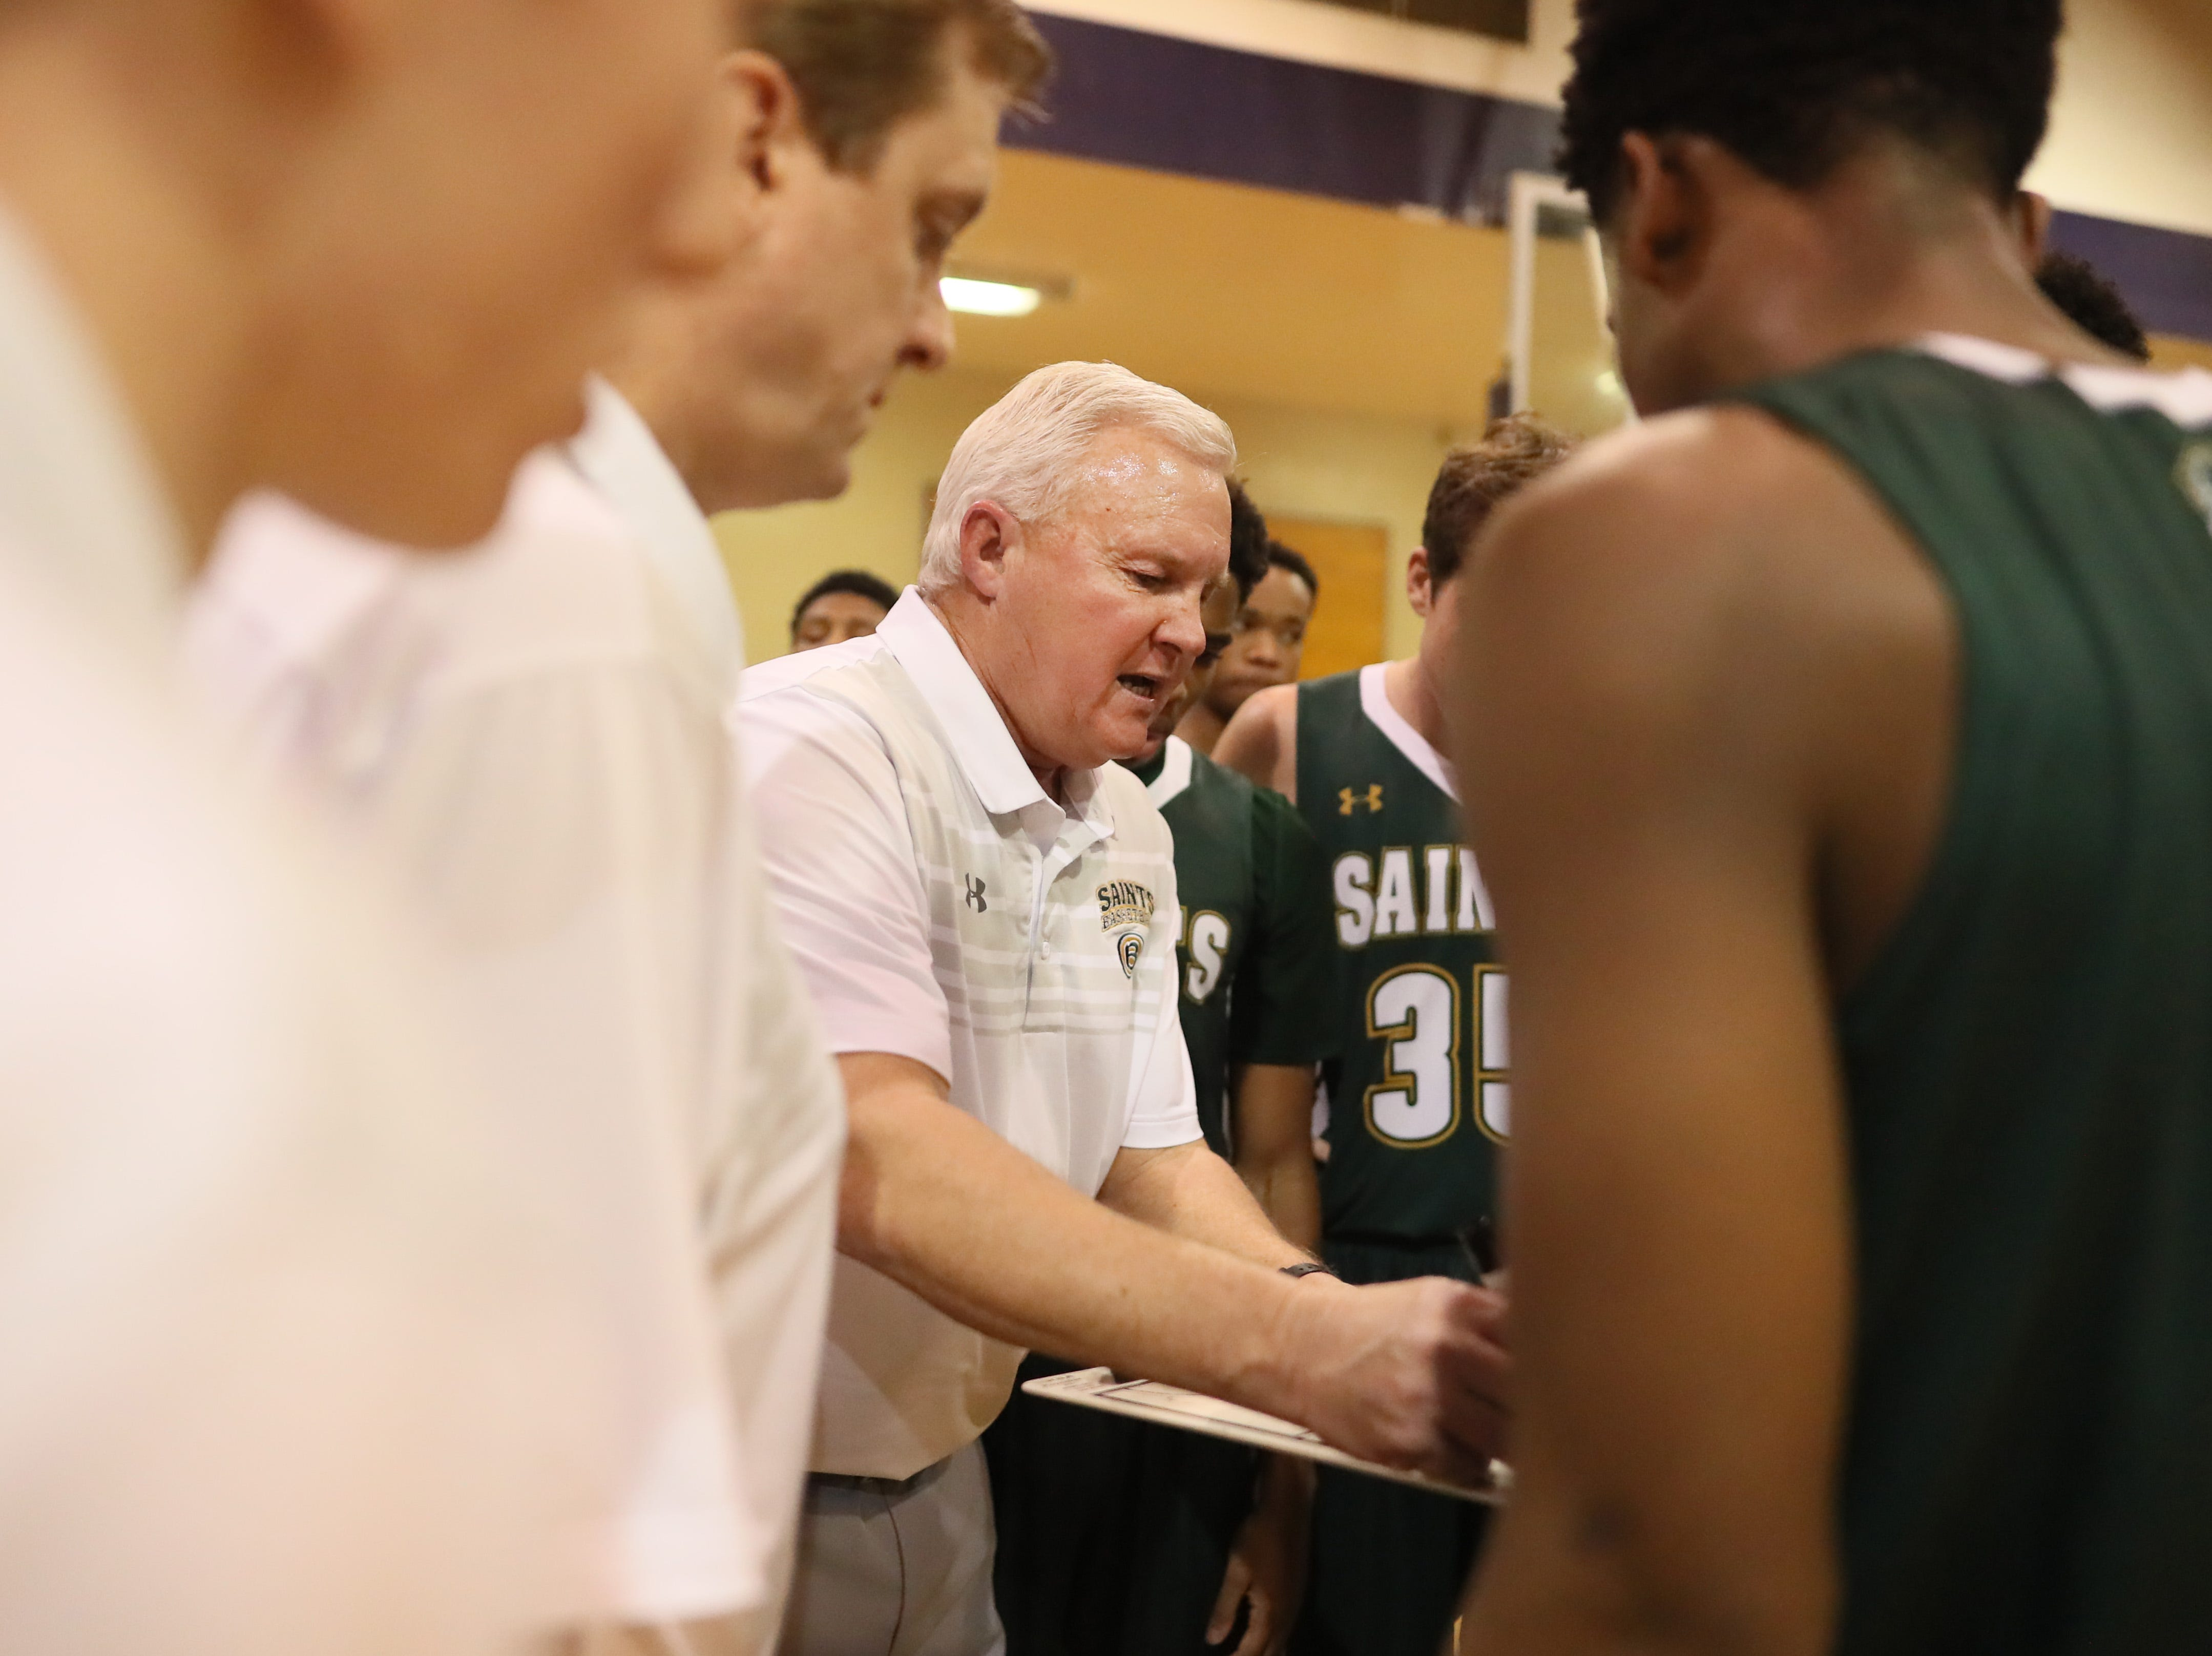 Briarcrest Head Coach John Harrington talks to his team during a timeout in their game at Christian Brothers High School on Friday, Jan. 11, 2019.